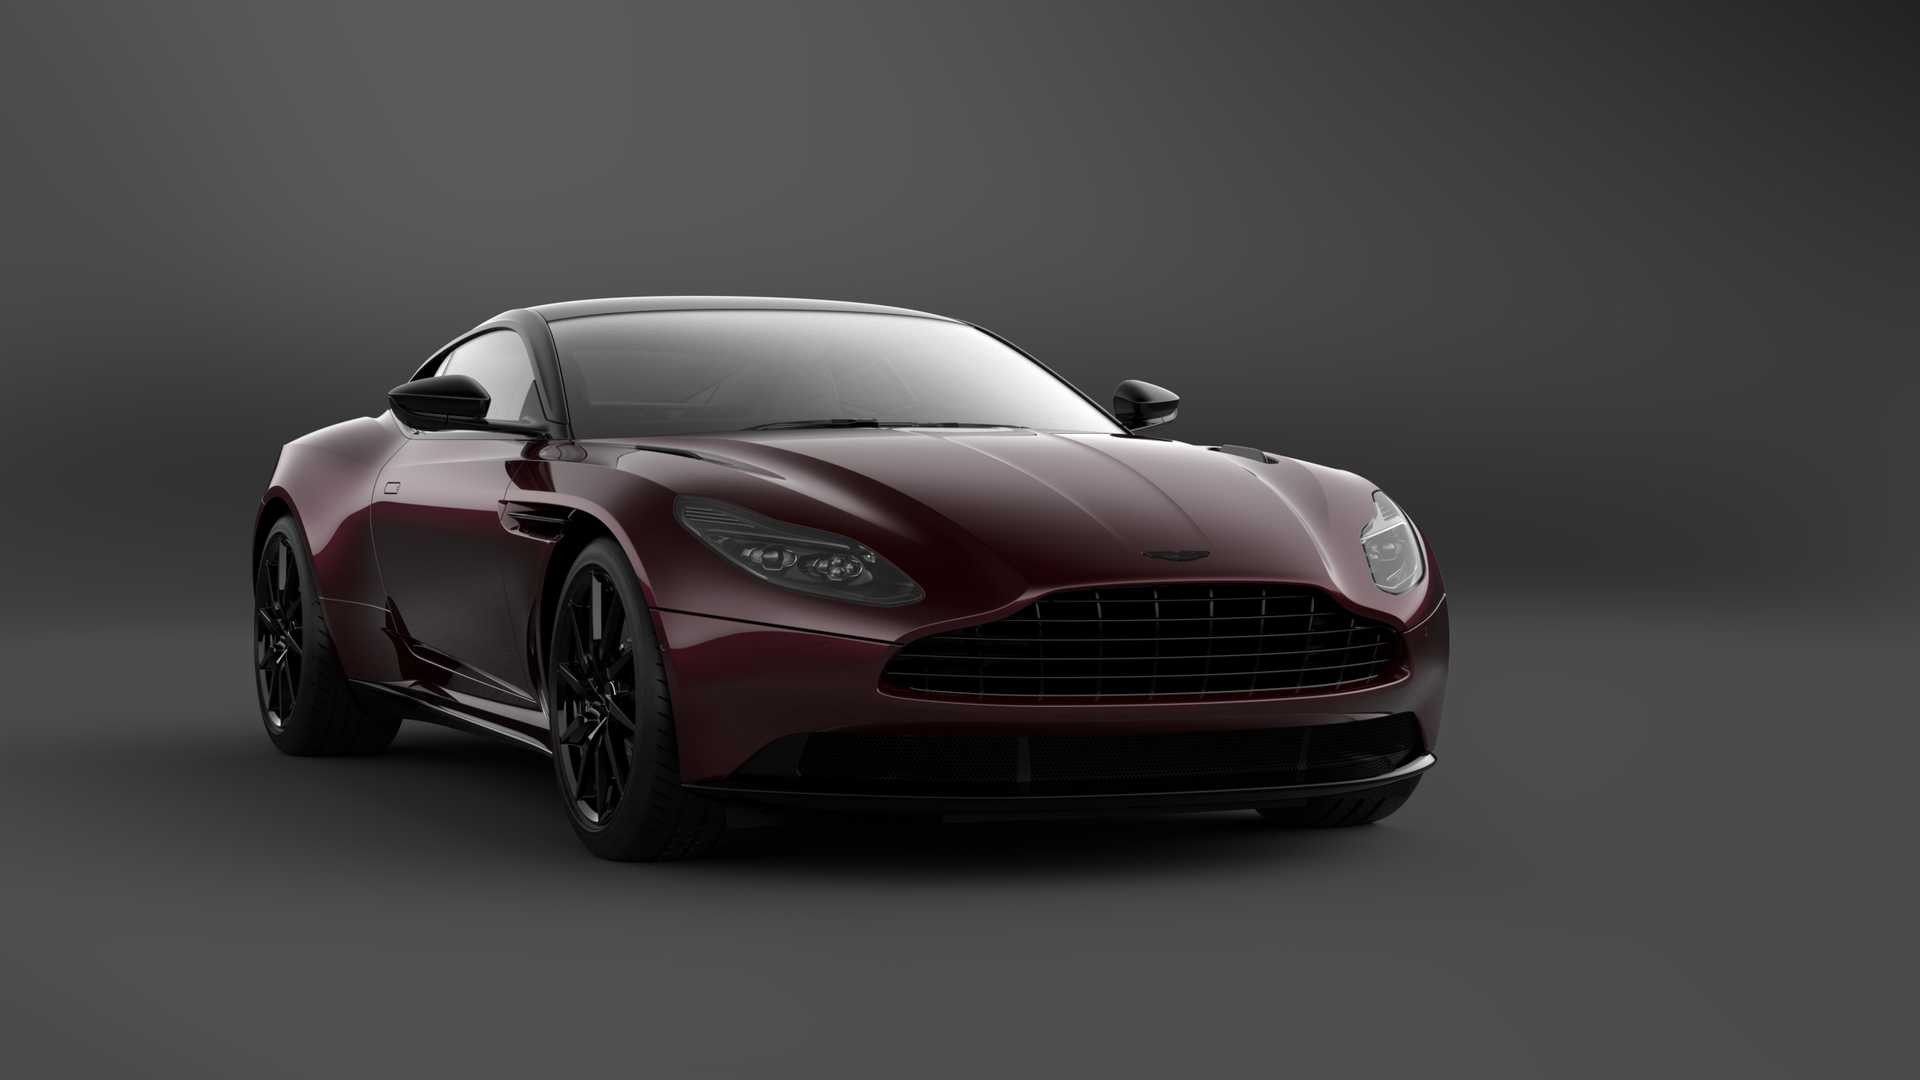 2021-aston-martin-db11-v8-shadow-edition-14.jpg